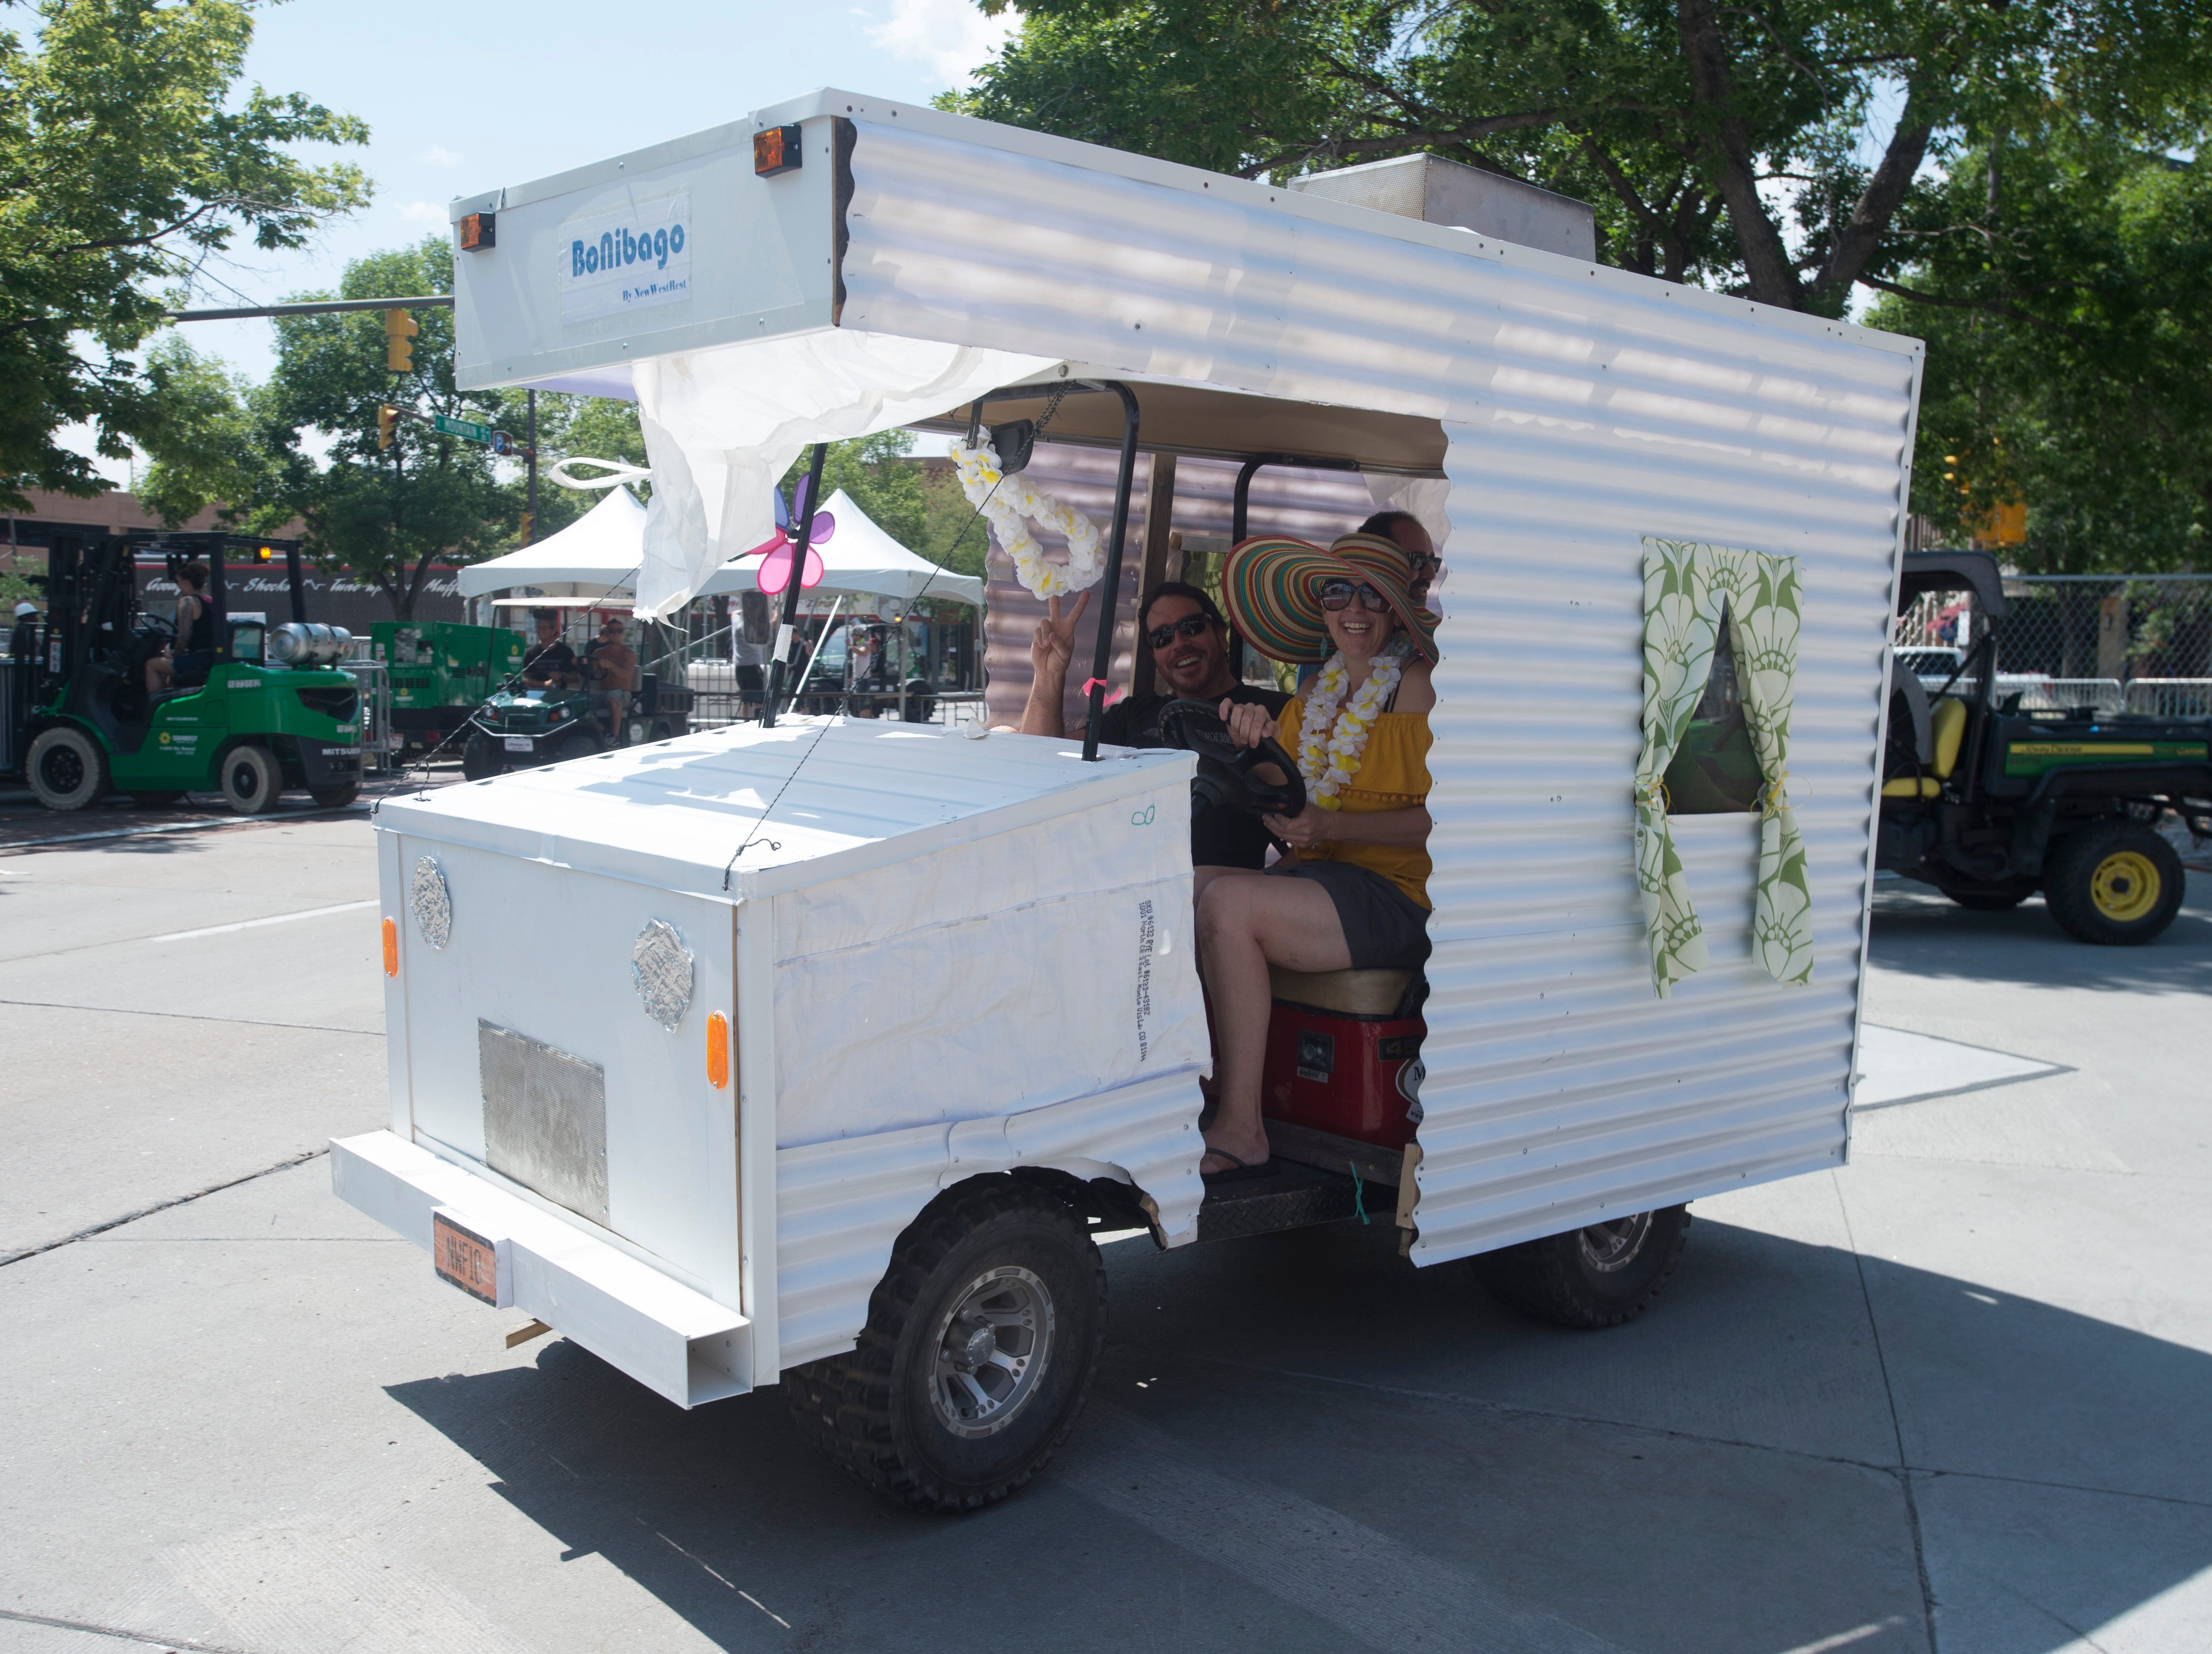 Golf Cart 5: Vote for your favorite NewWestFest decorated golf cart.